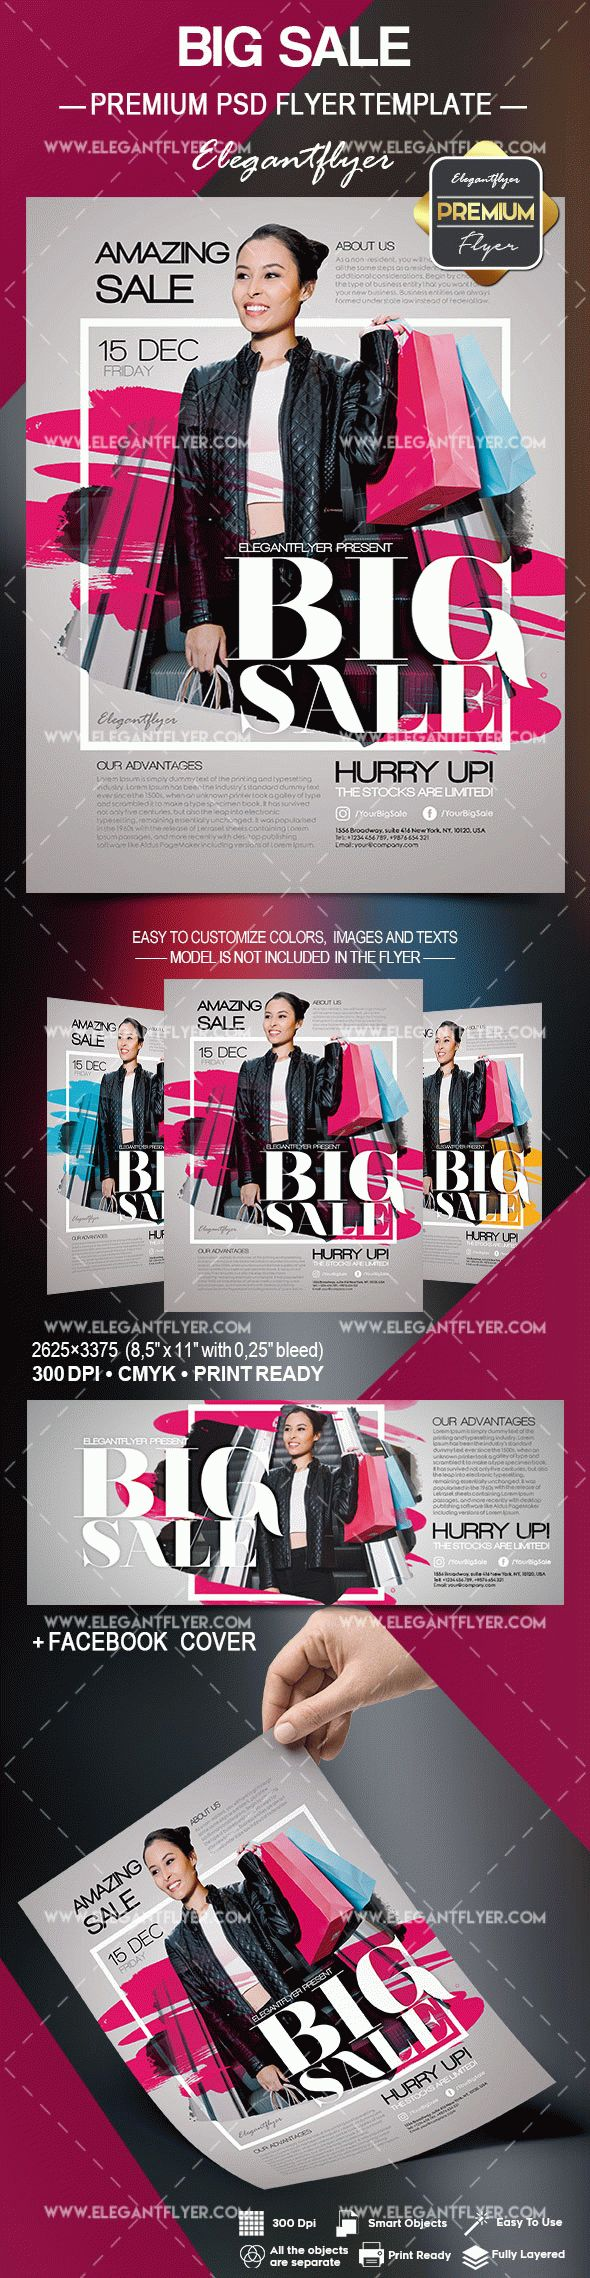 Flyer Template for Big Amazing Sale